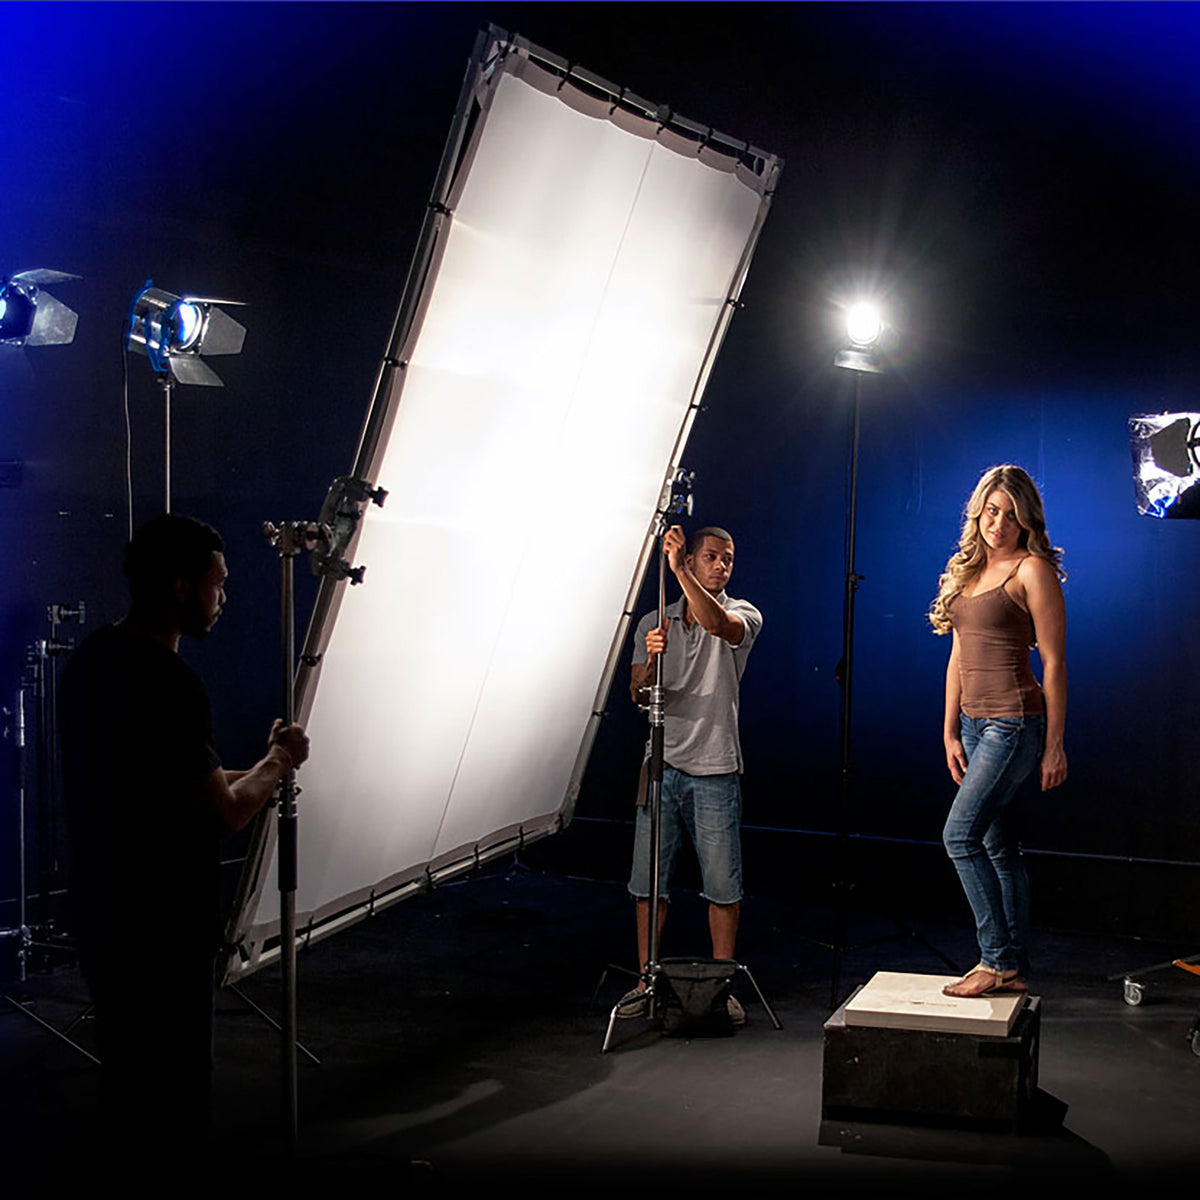 Lighting Modifiers - 8ft x 8ft - Silks, Diffusion and Blacks